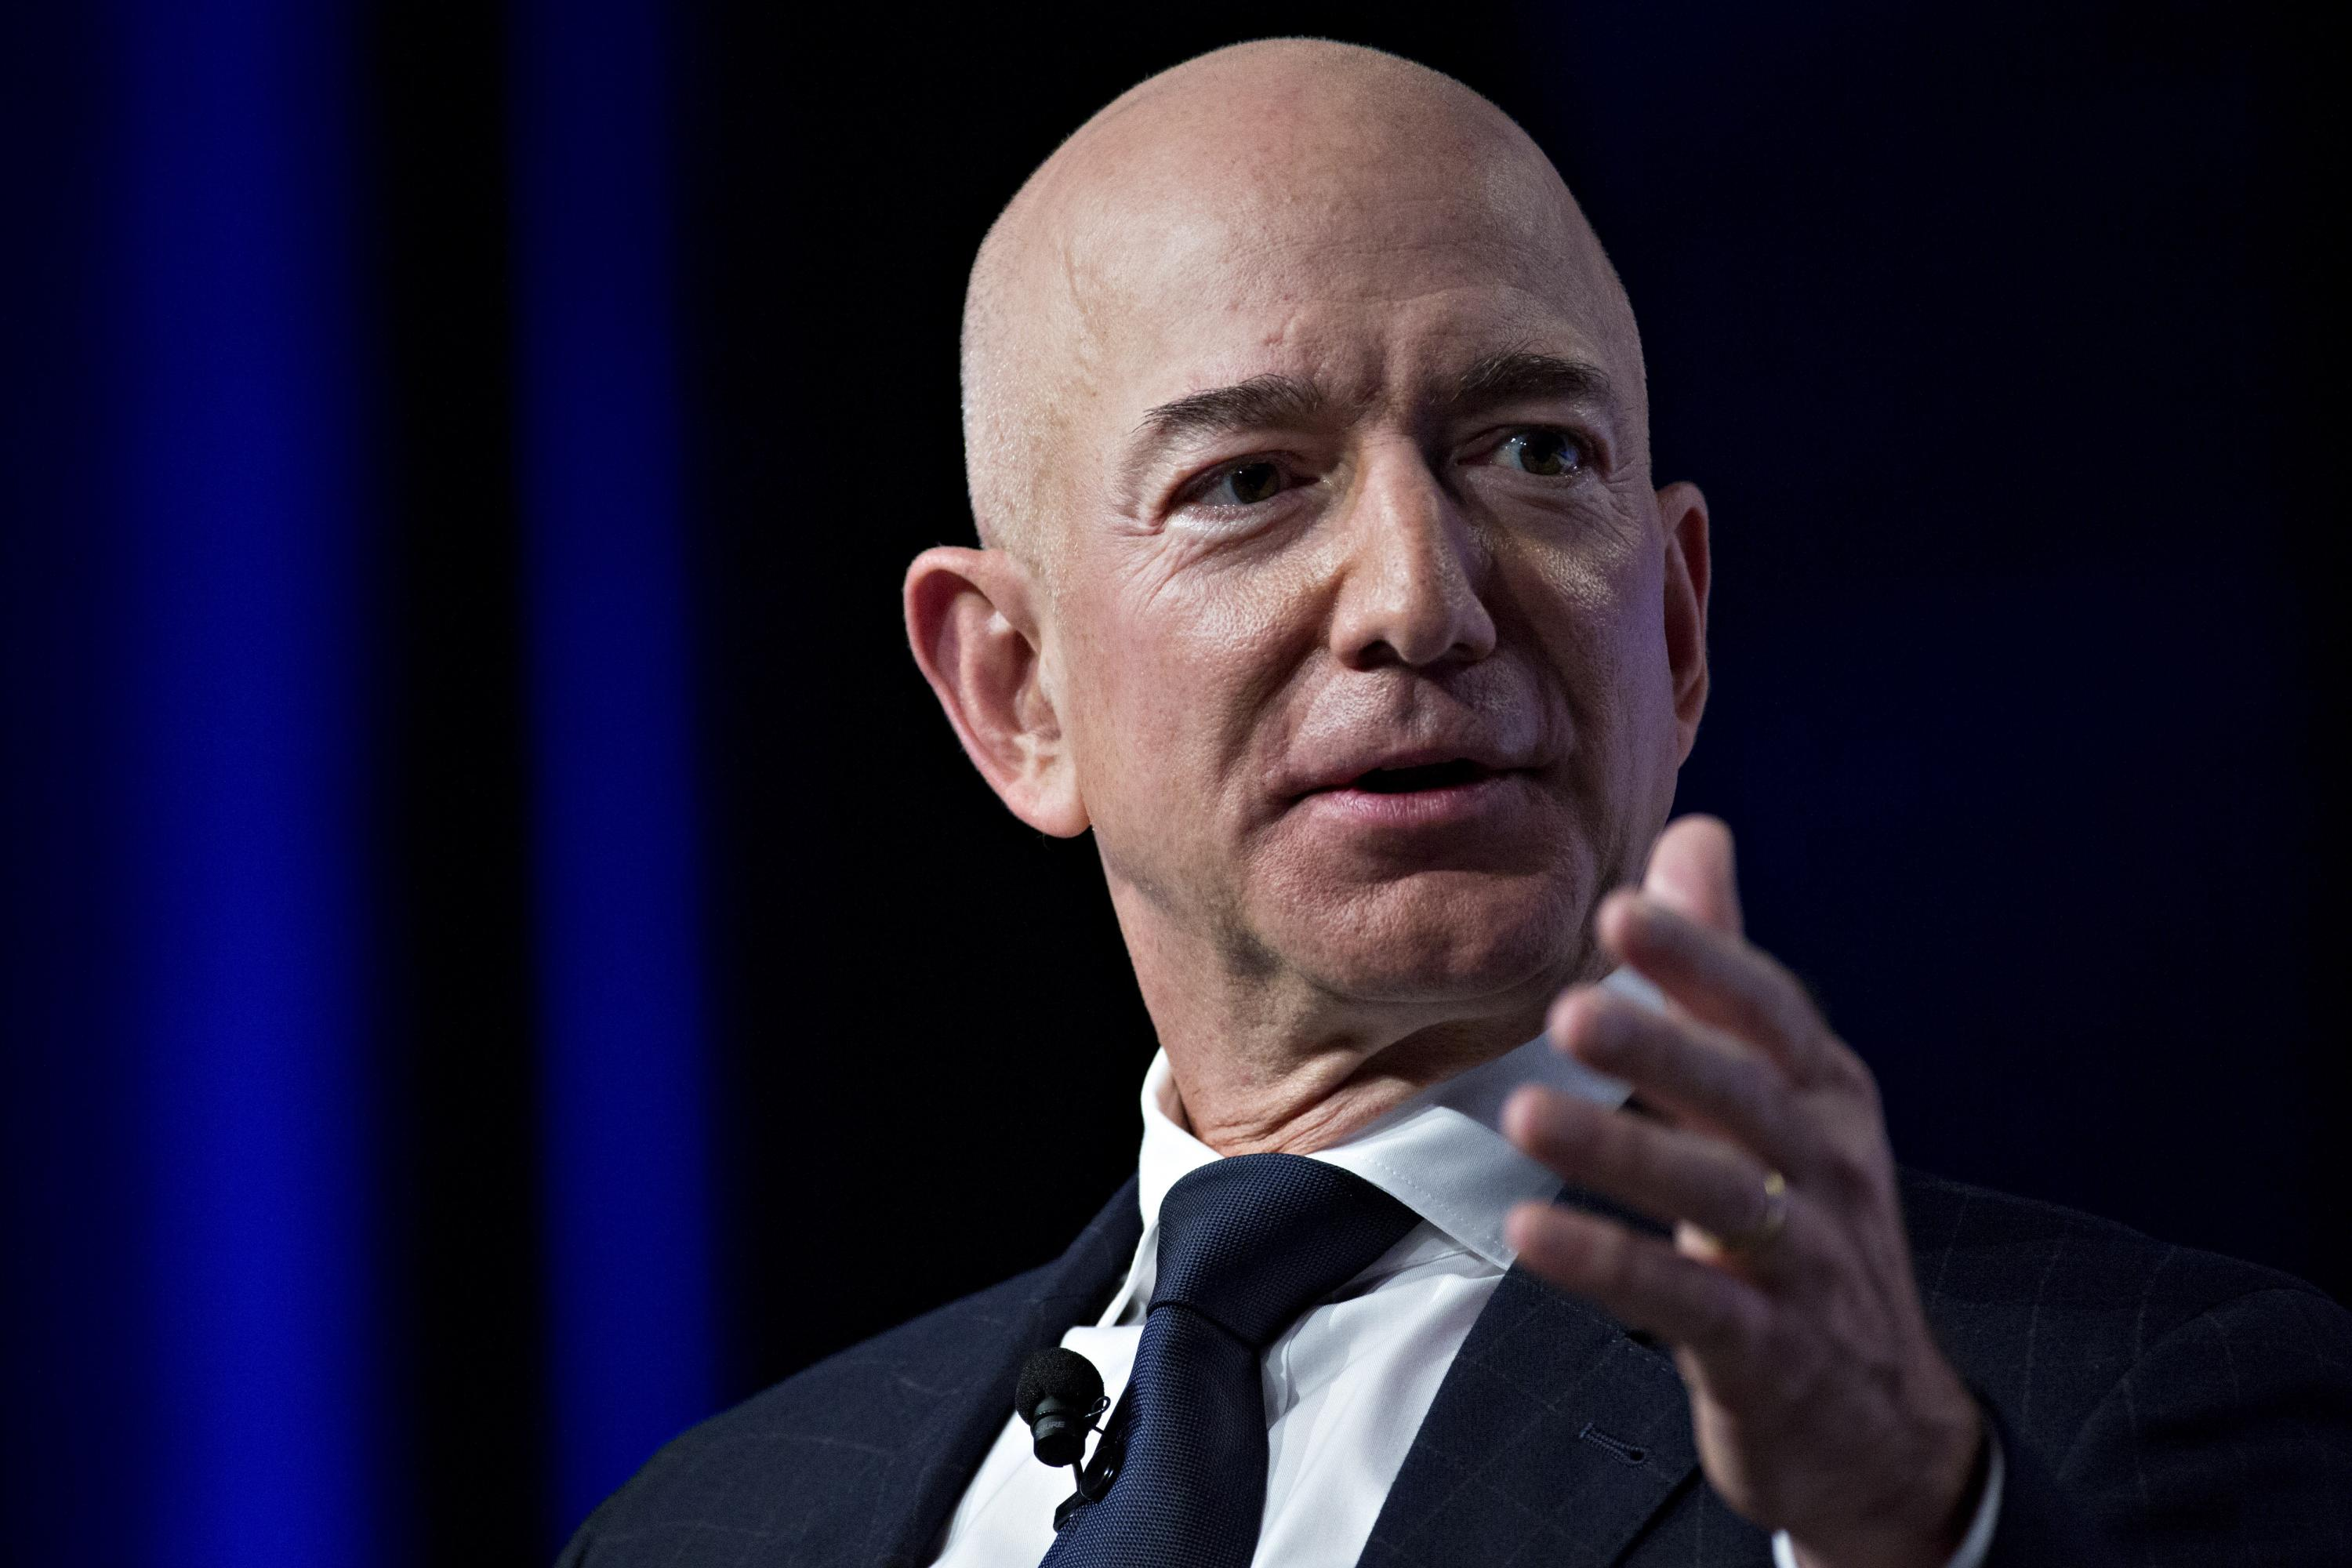 Amazon challenges retailers like Walmart, Target, and Costco to beat its wages